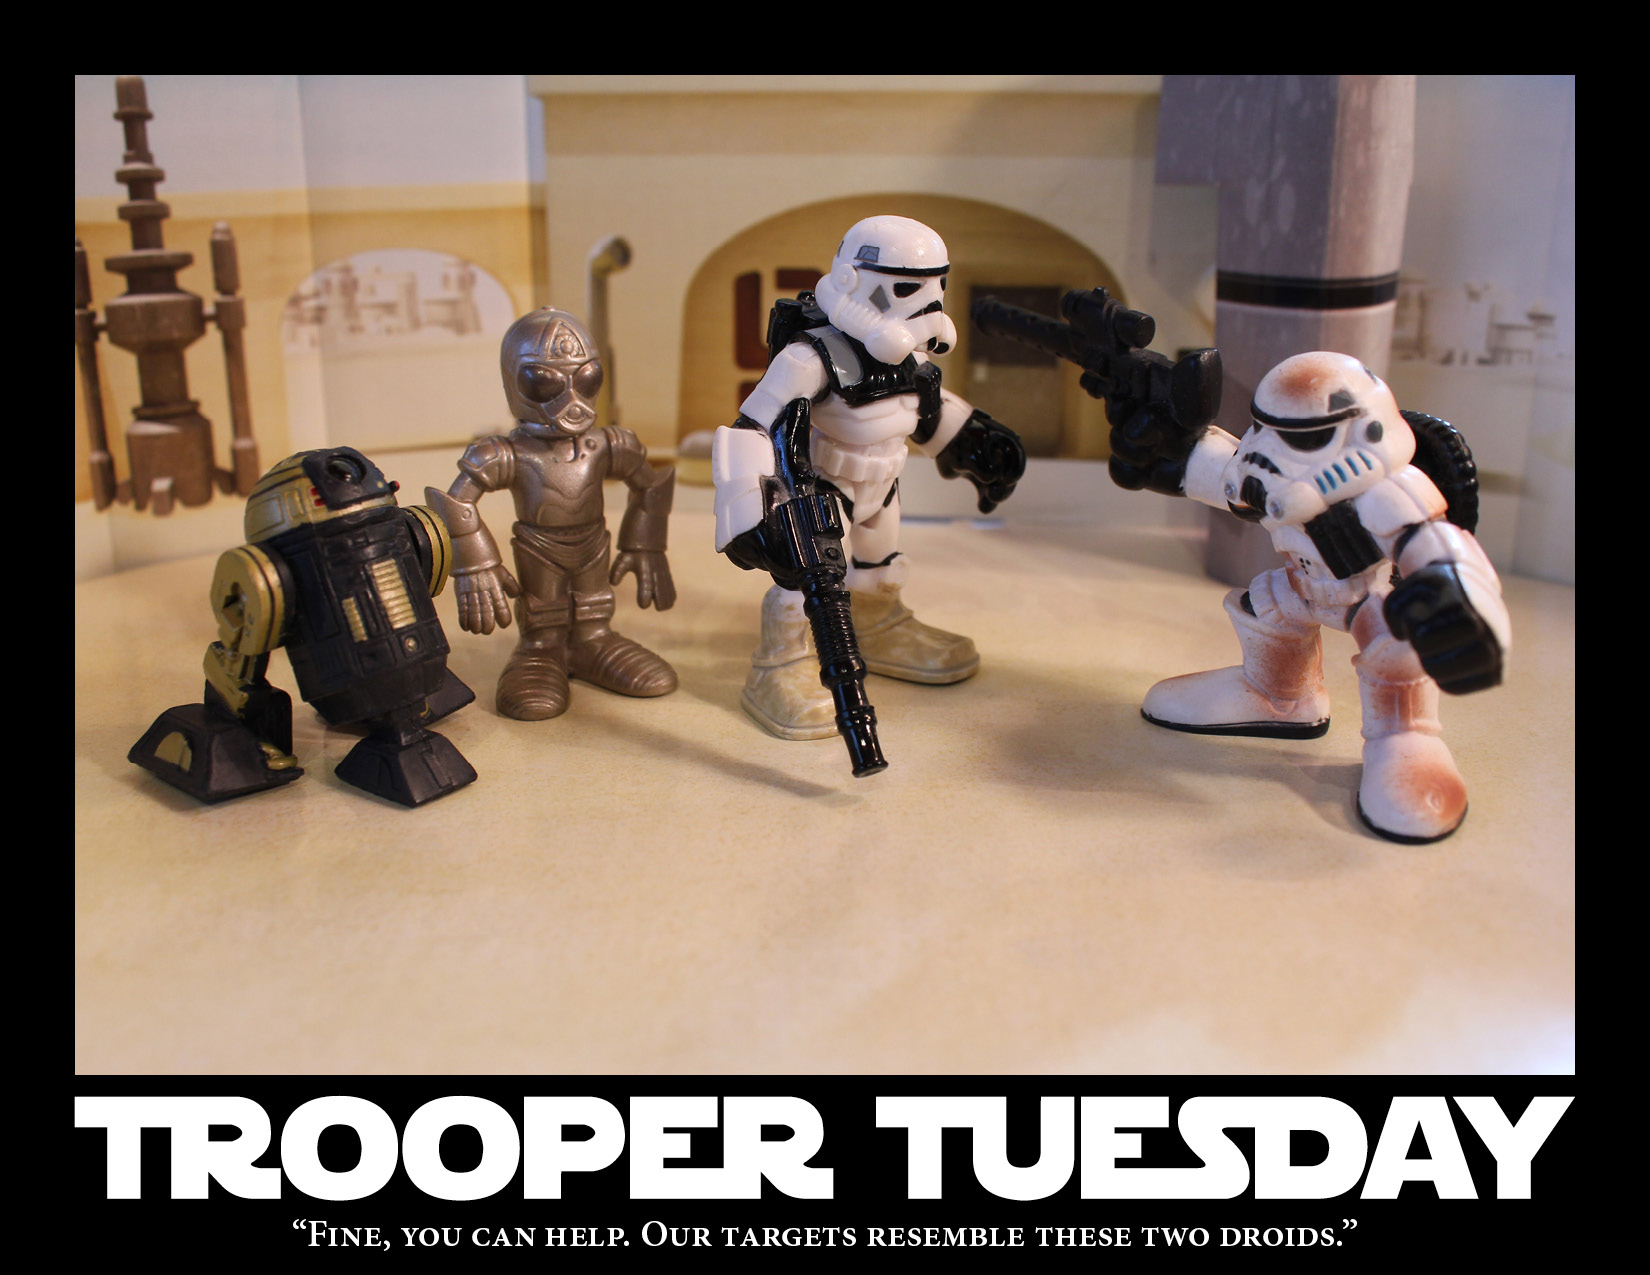 Two Sandtroopers and two droids.